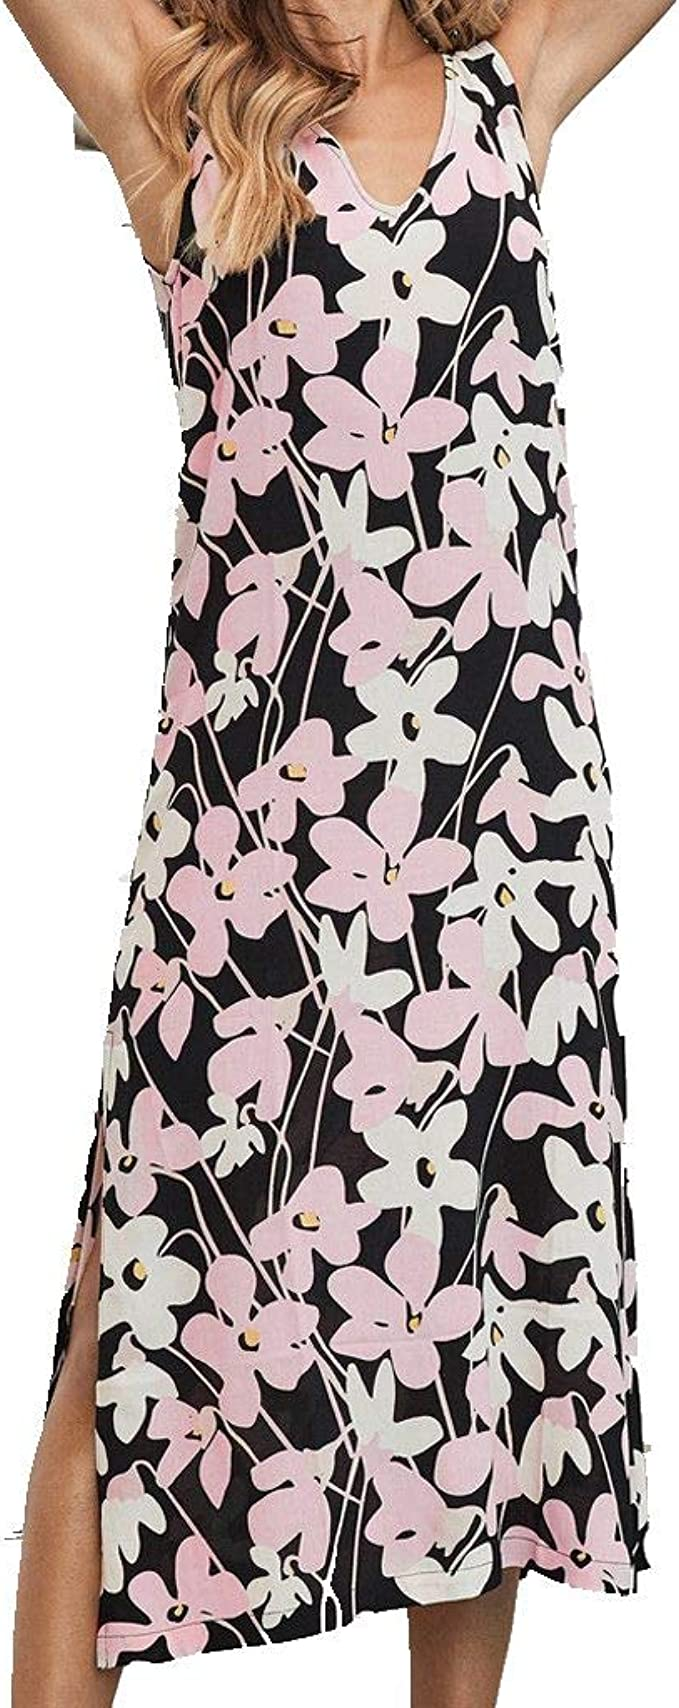 Women Strappy Floral Printed Pleated Boho Skirt Casual Sleeveless Sling Sundress